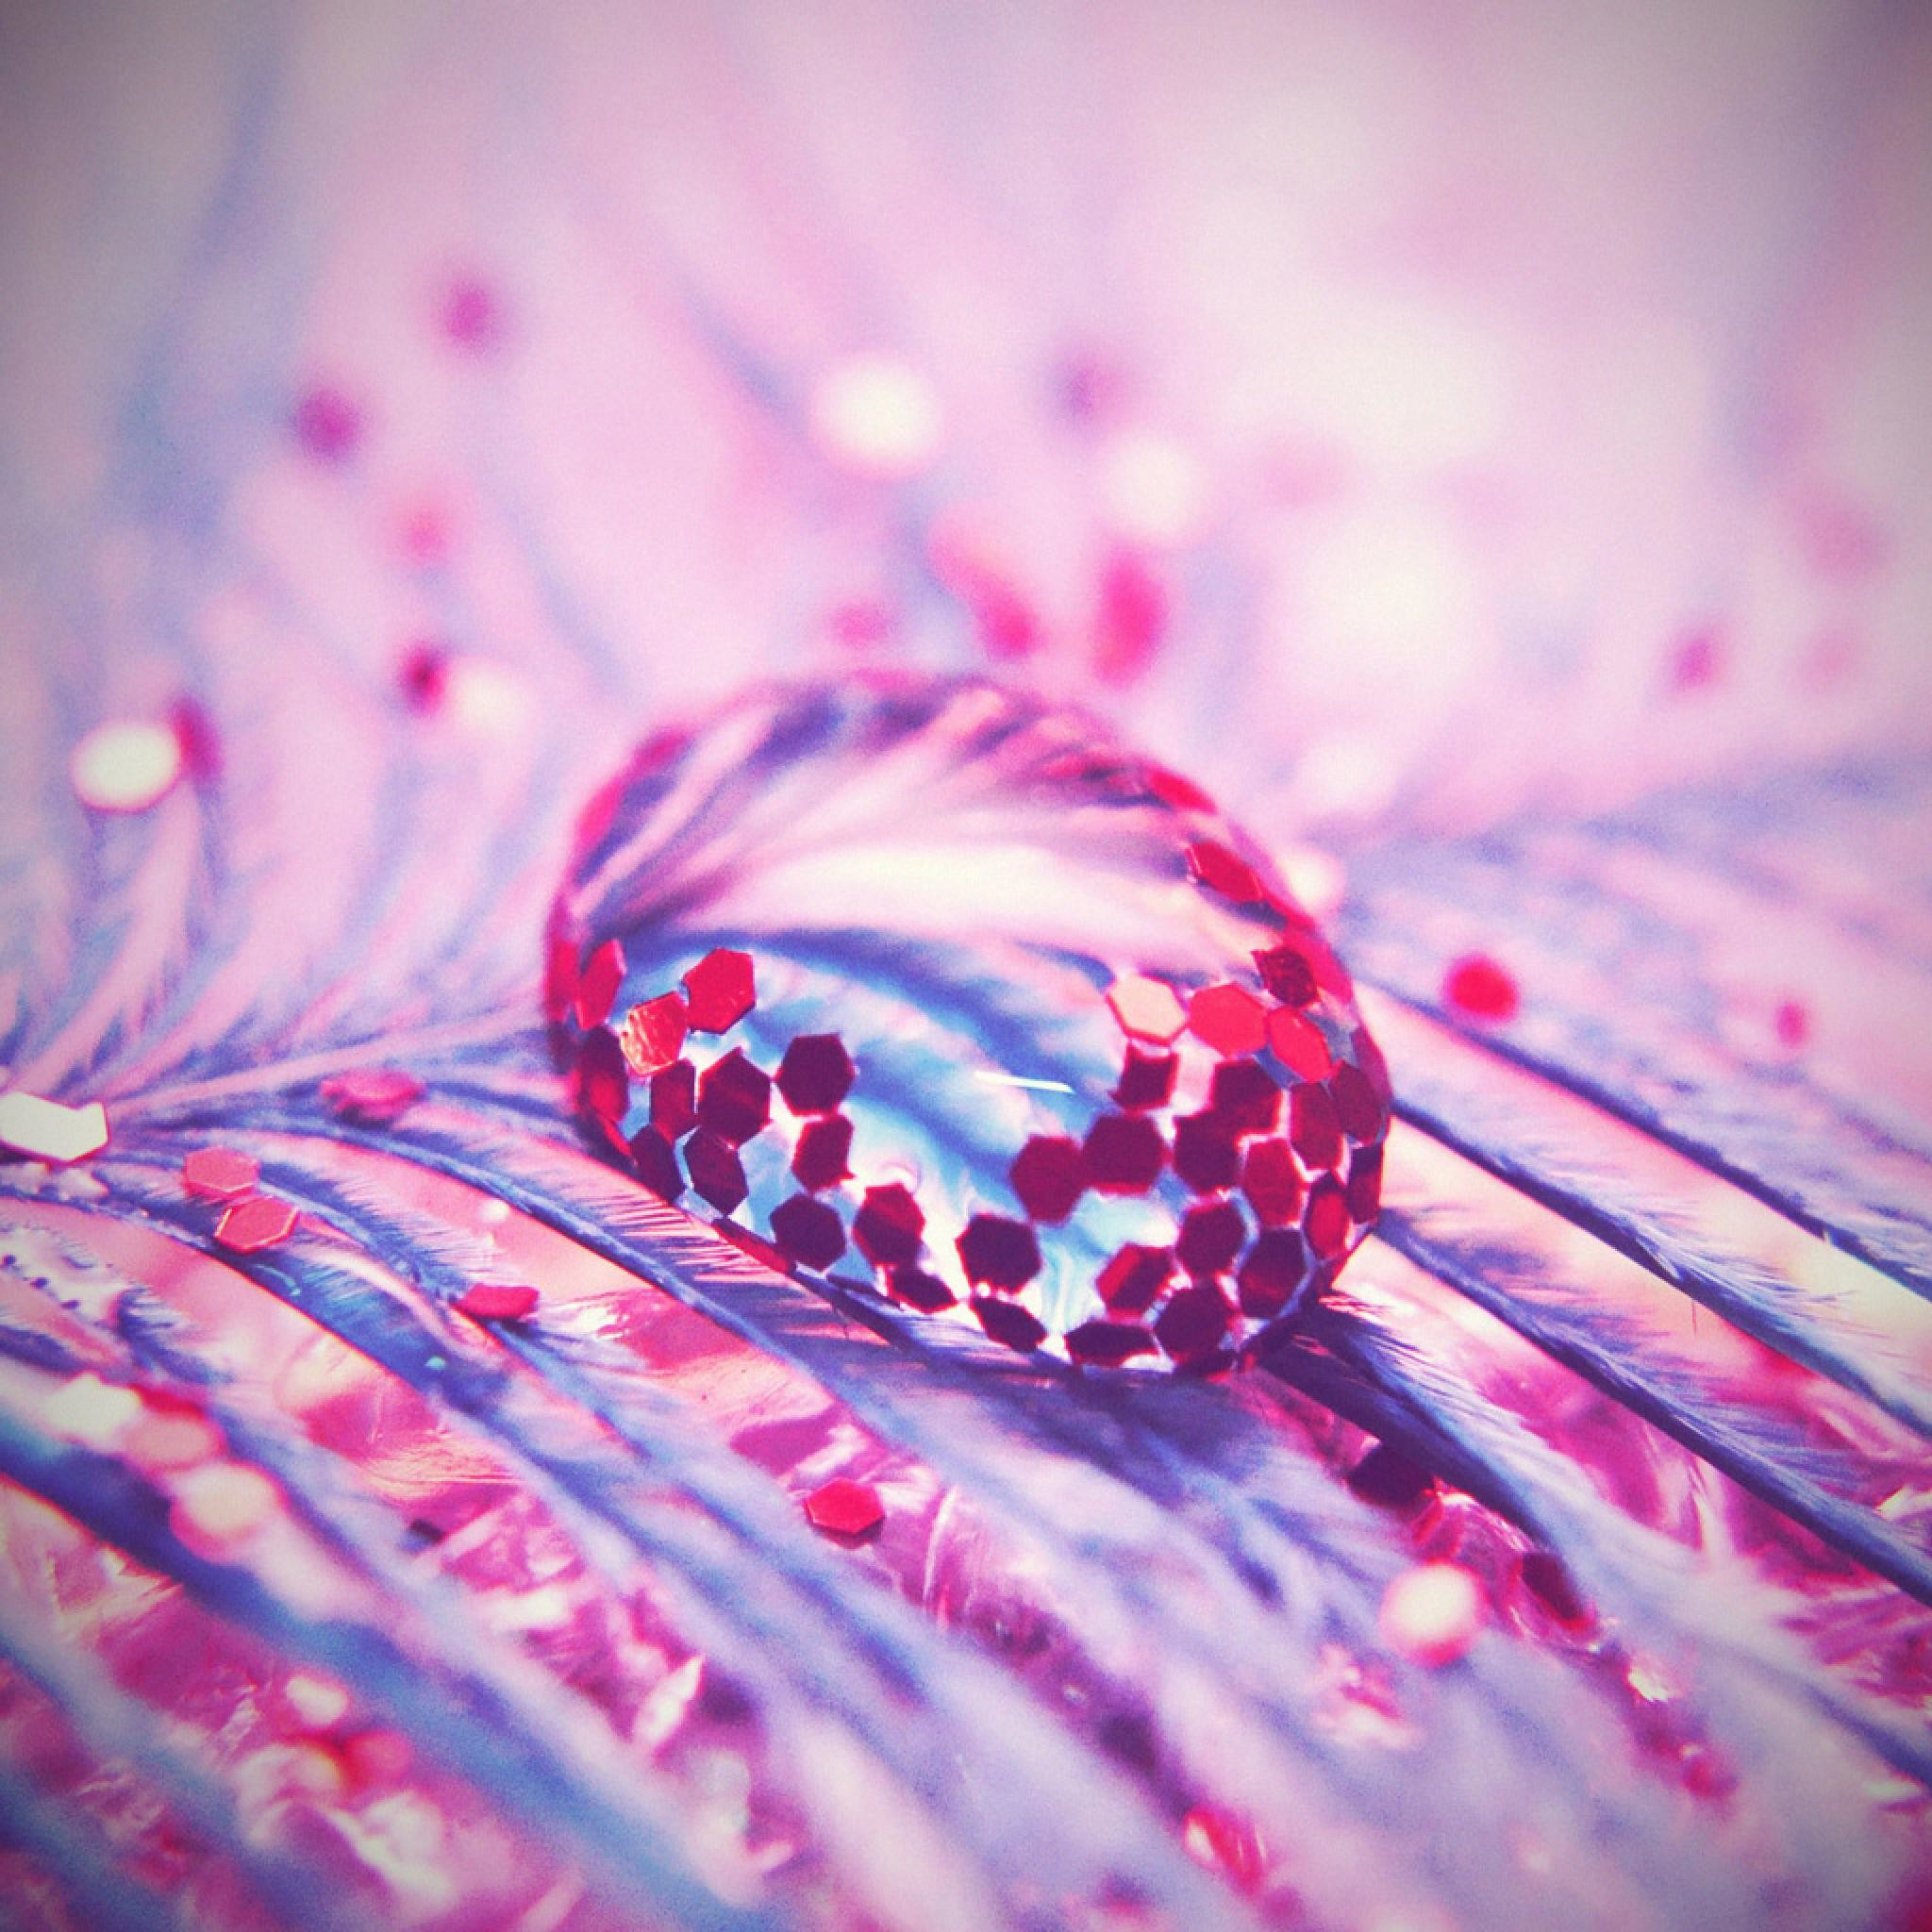 Dreamy ethereal cute pink and blue feather glitter water drop fine art  photography bokeh home decor